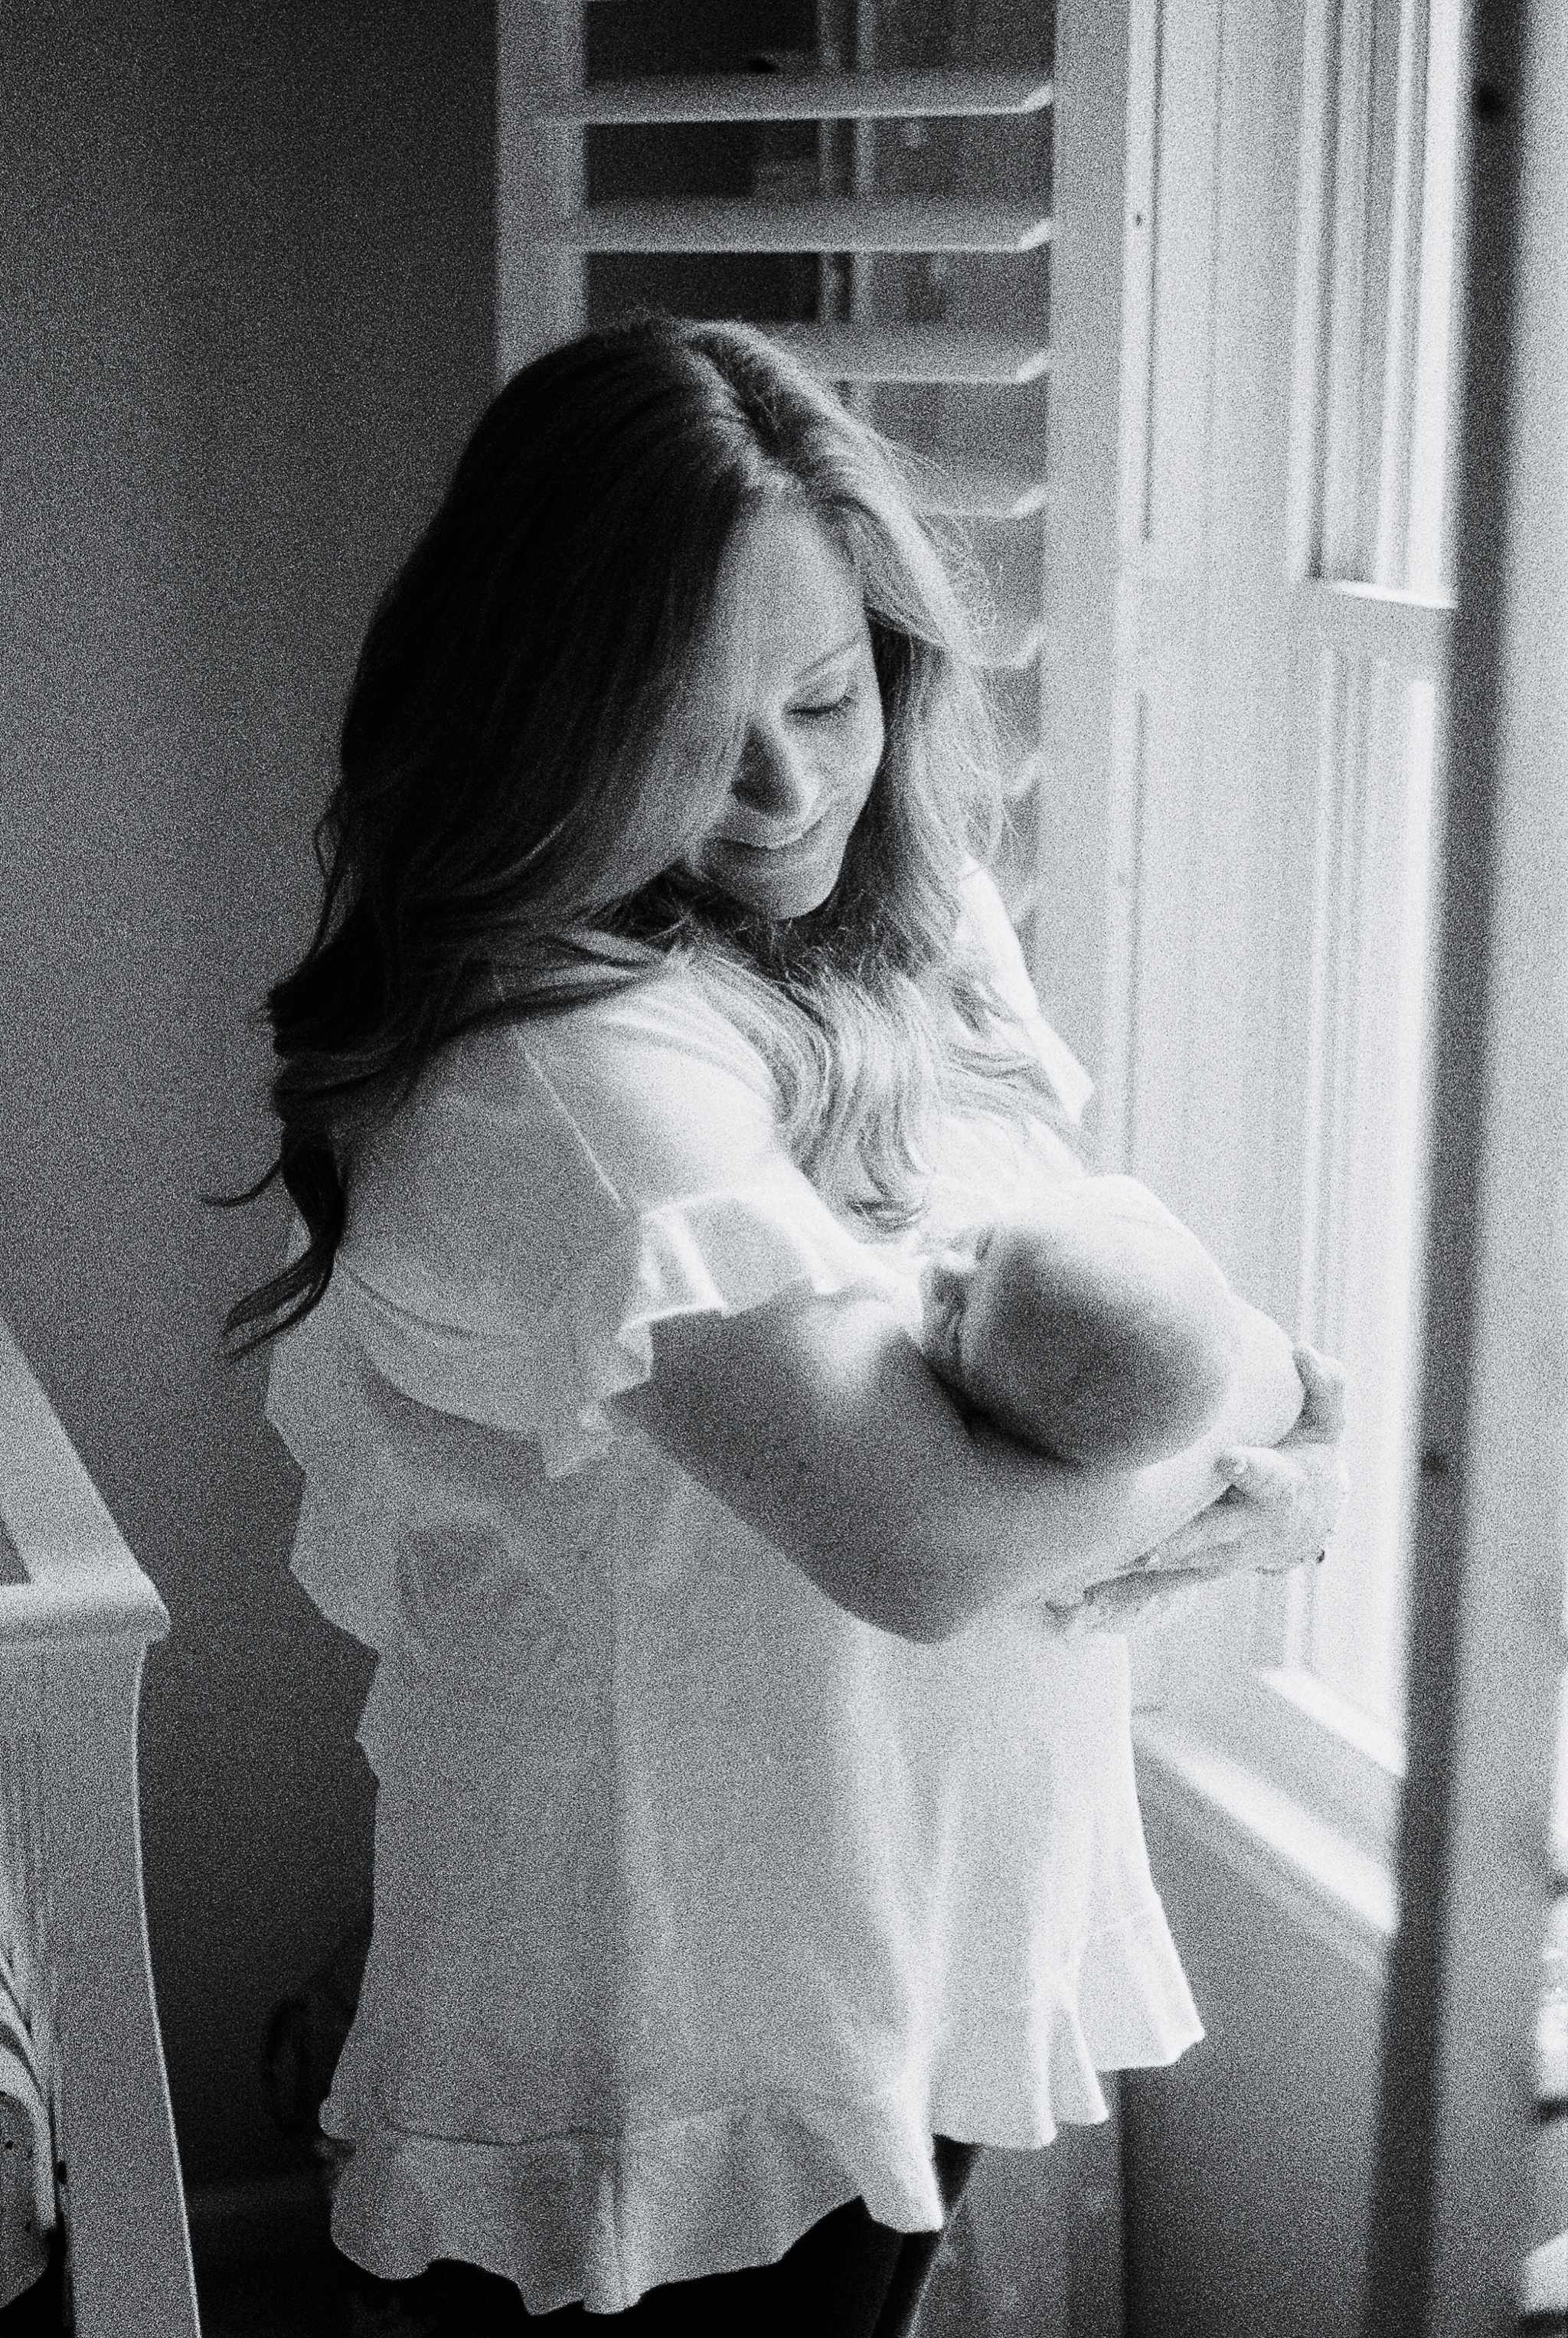 atlanta-georgia-film-lifestyle-newborn-photographer-brooks-wilder-35.jpg